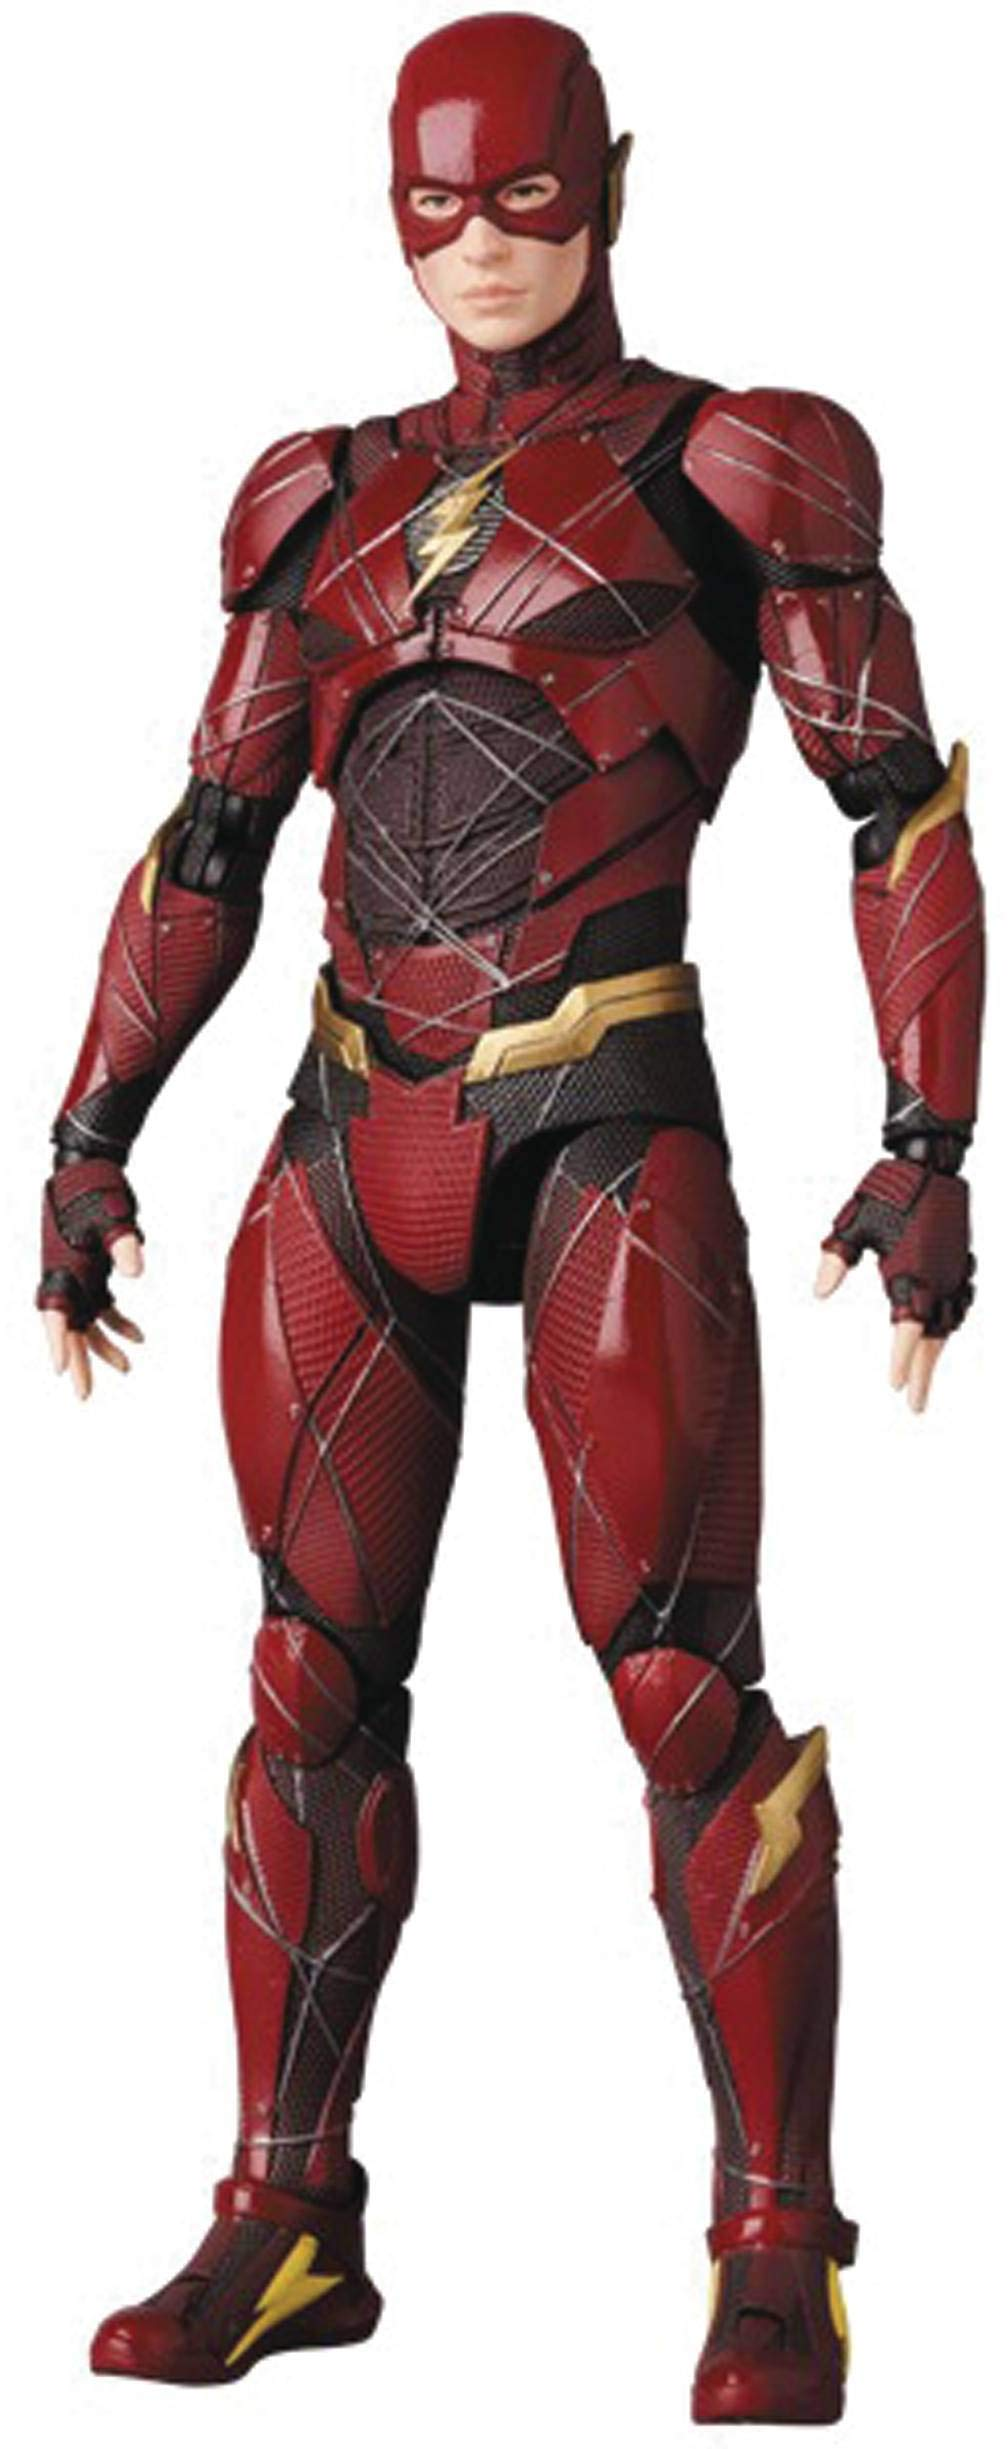 Entertainment Earth Justice League Movie Flash Mafex Action Figure